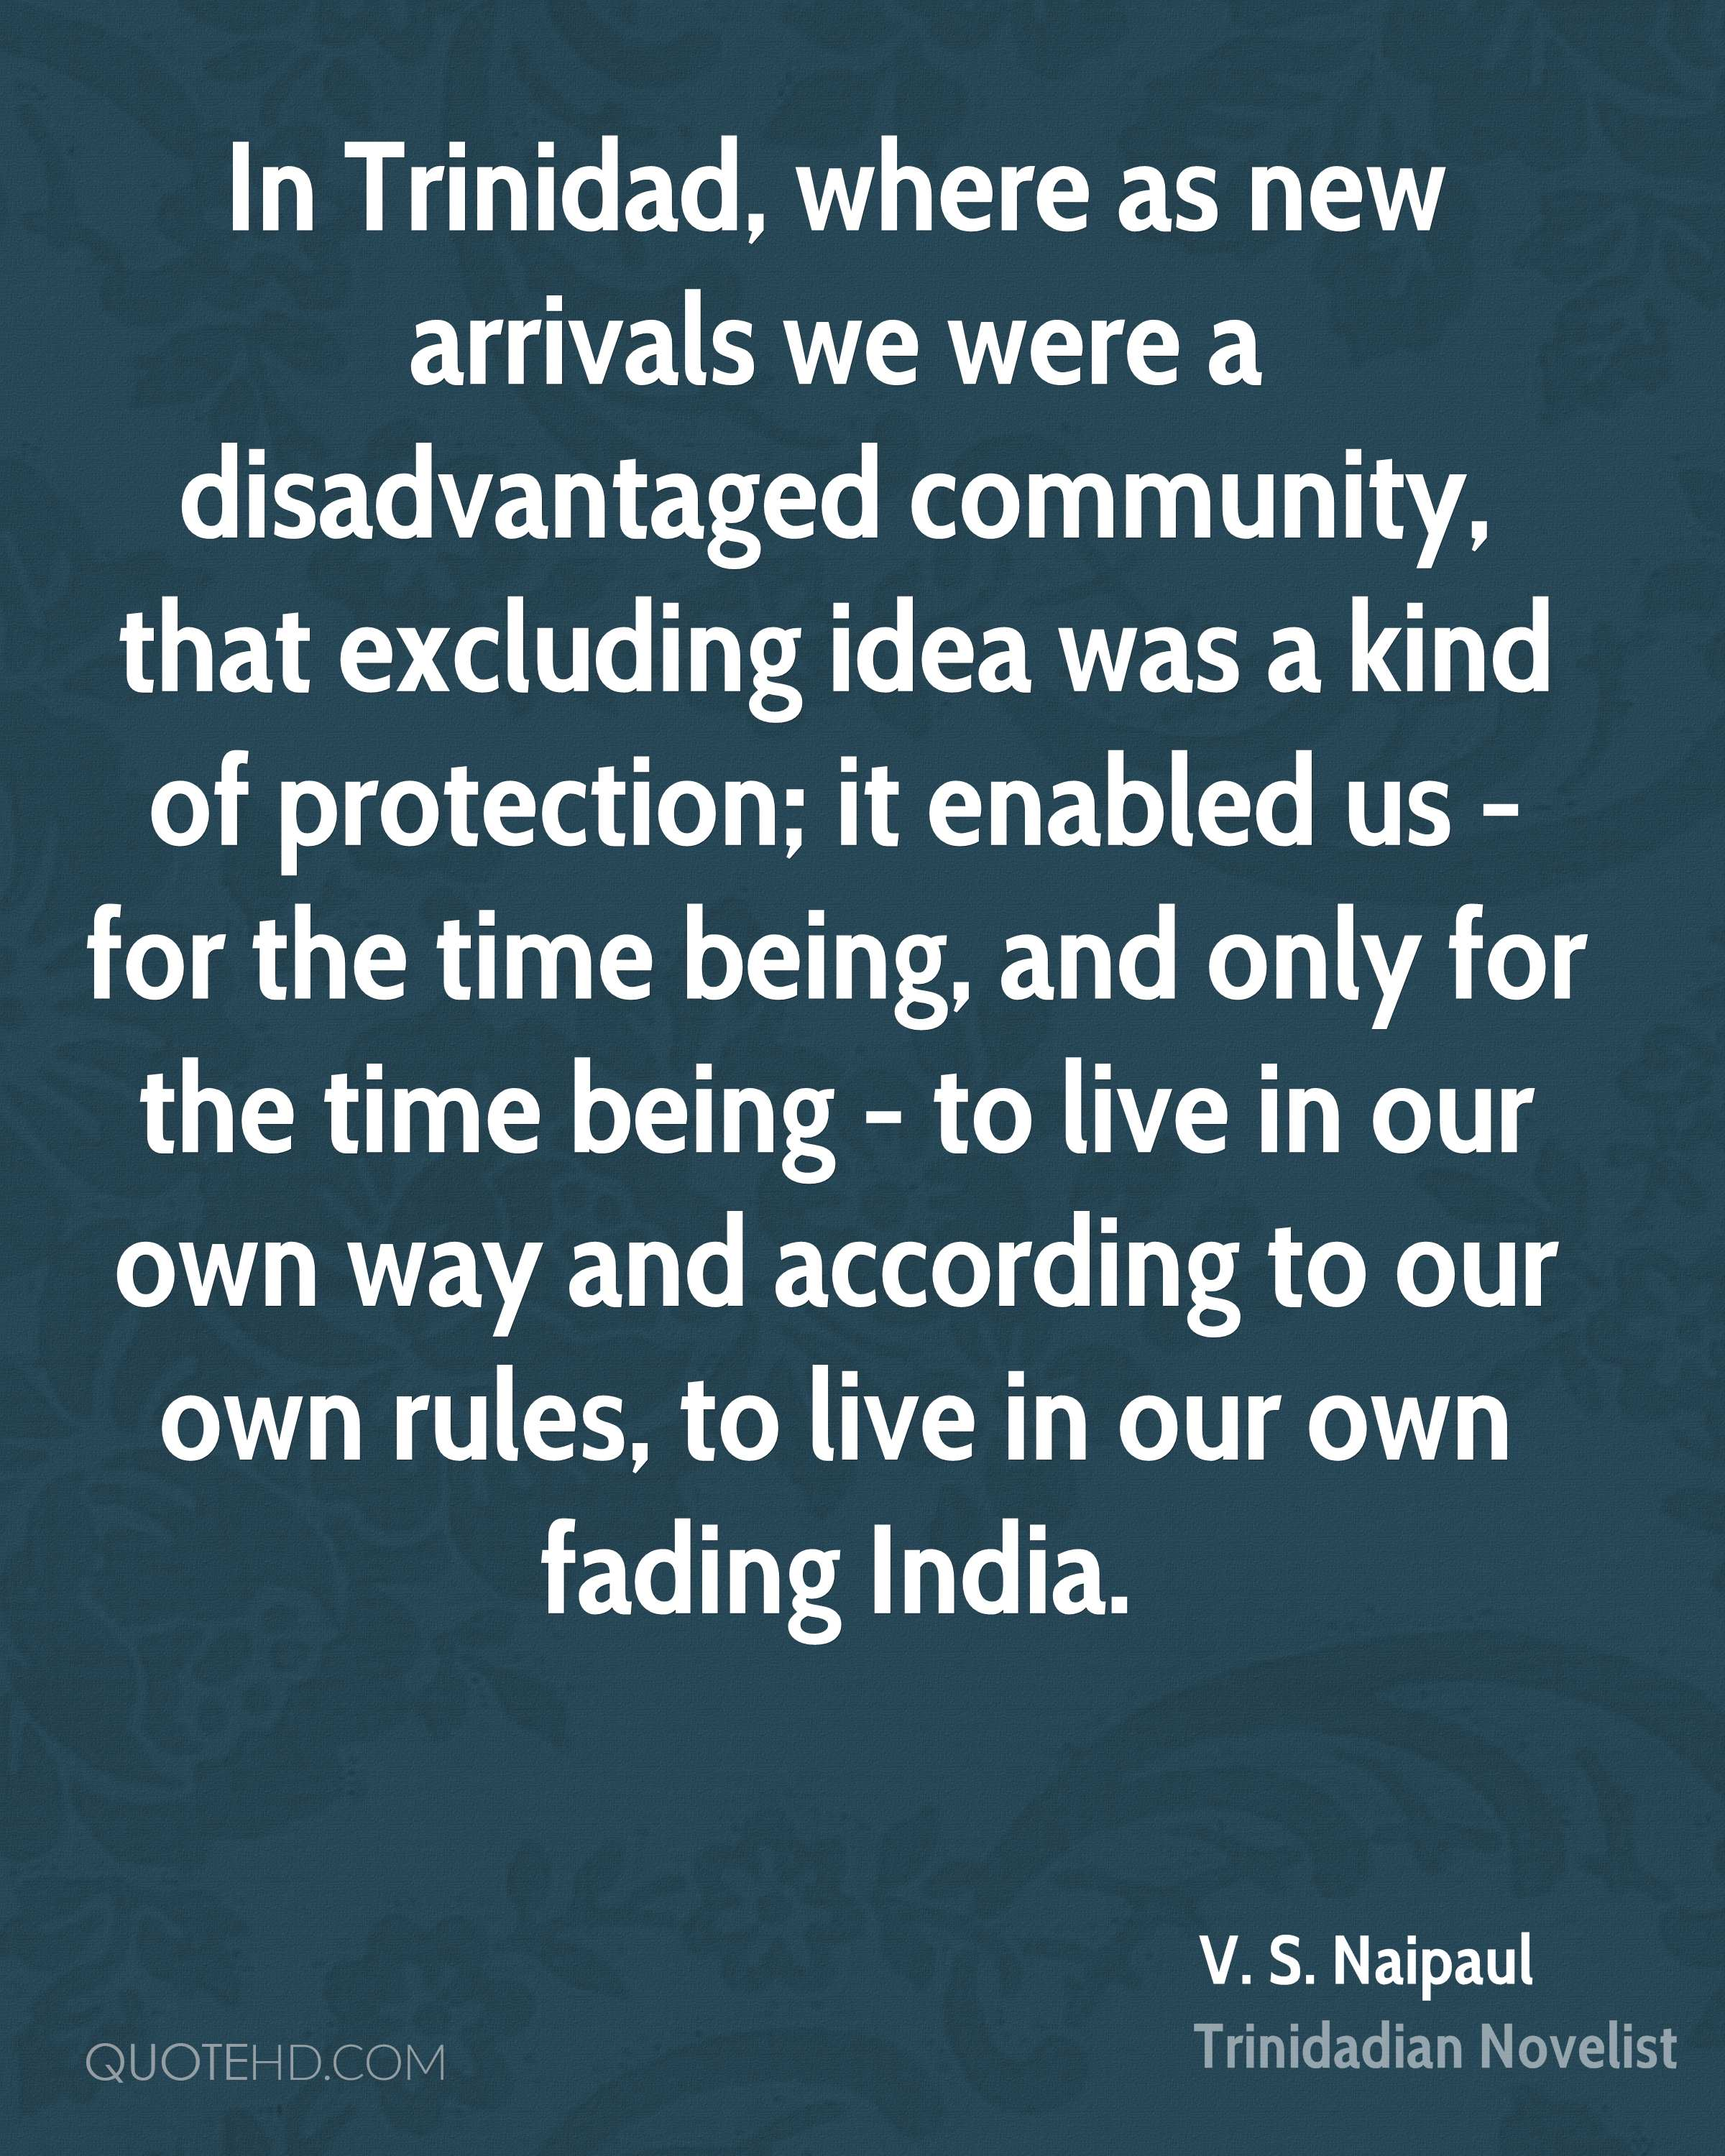 In Trinidad, where as new arrivals we were a disadvantaged community, that excluding idea was a kind of protection; it enabled us - for the time being, and only for the time being - to live in our own way and according to our own rules, to live in our own fading India.